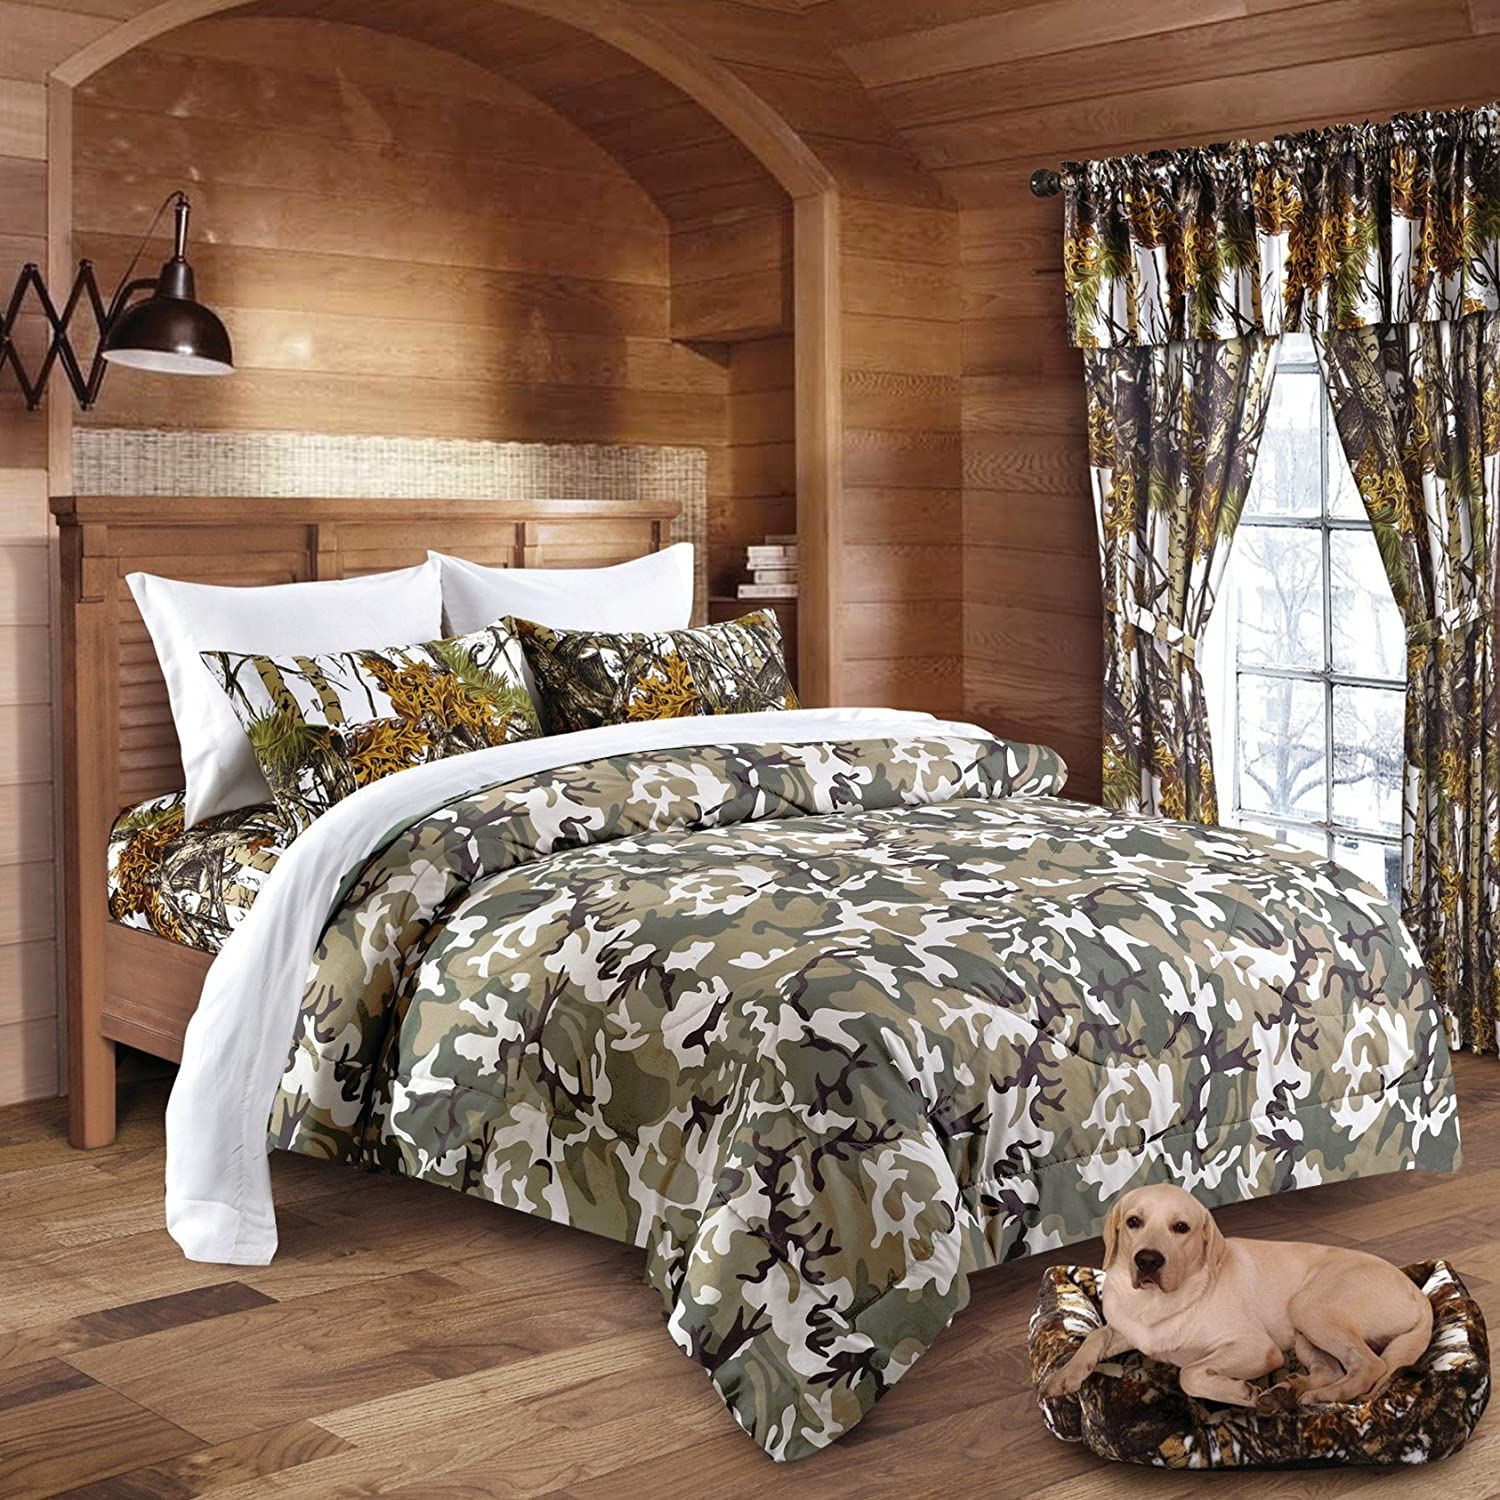 Military Camouflage Bedding Sets – Ease Bedding with Style